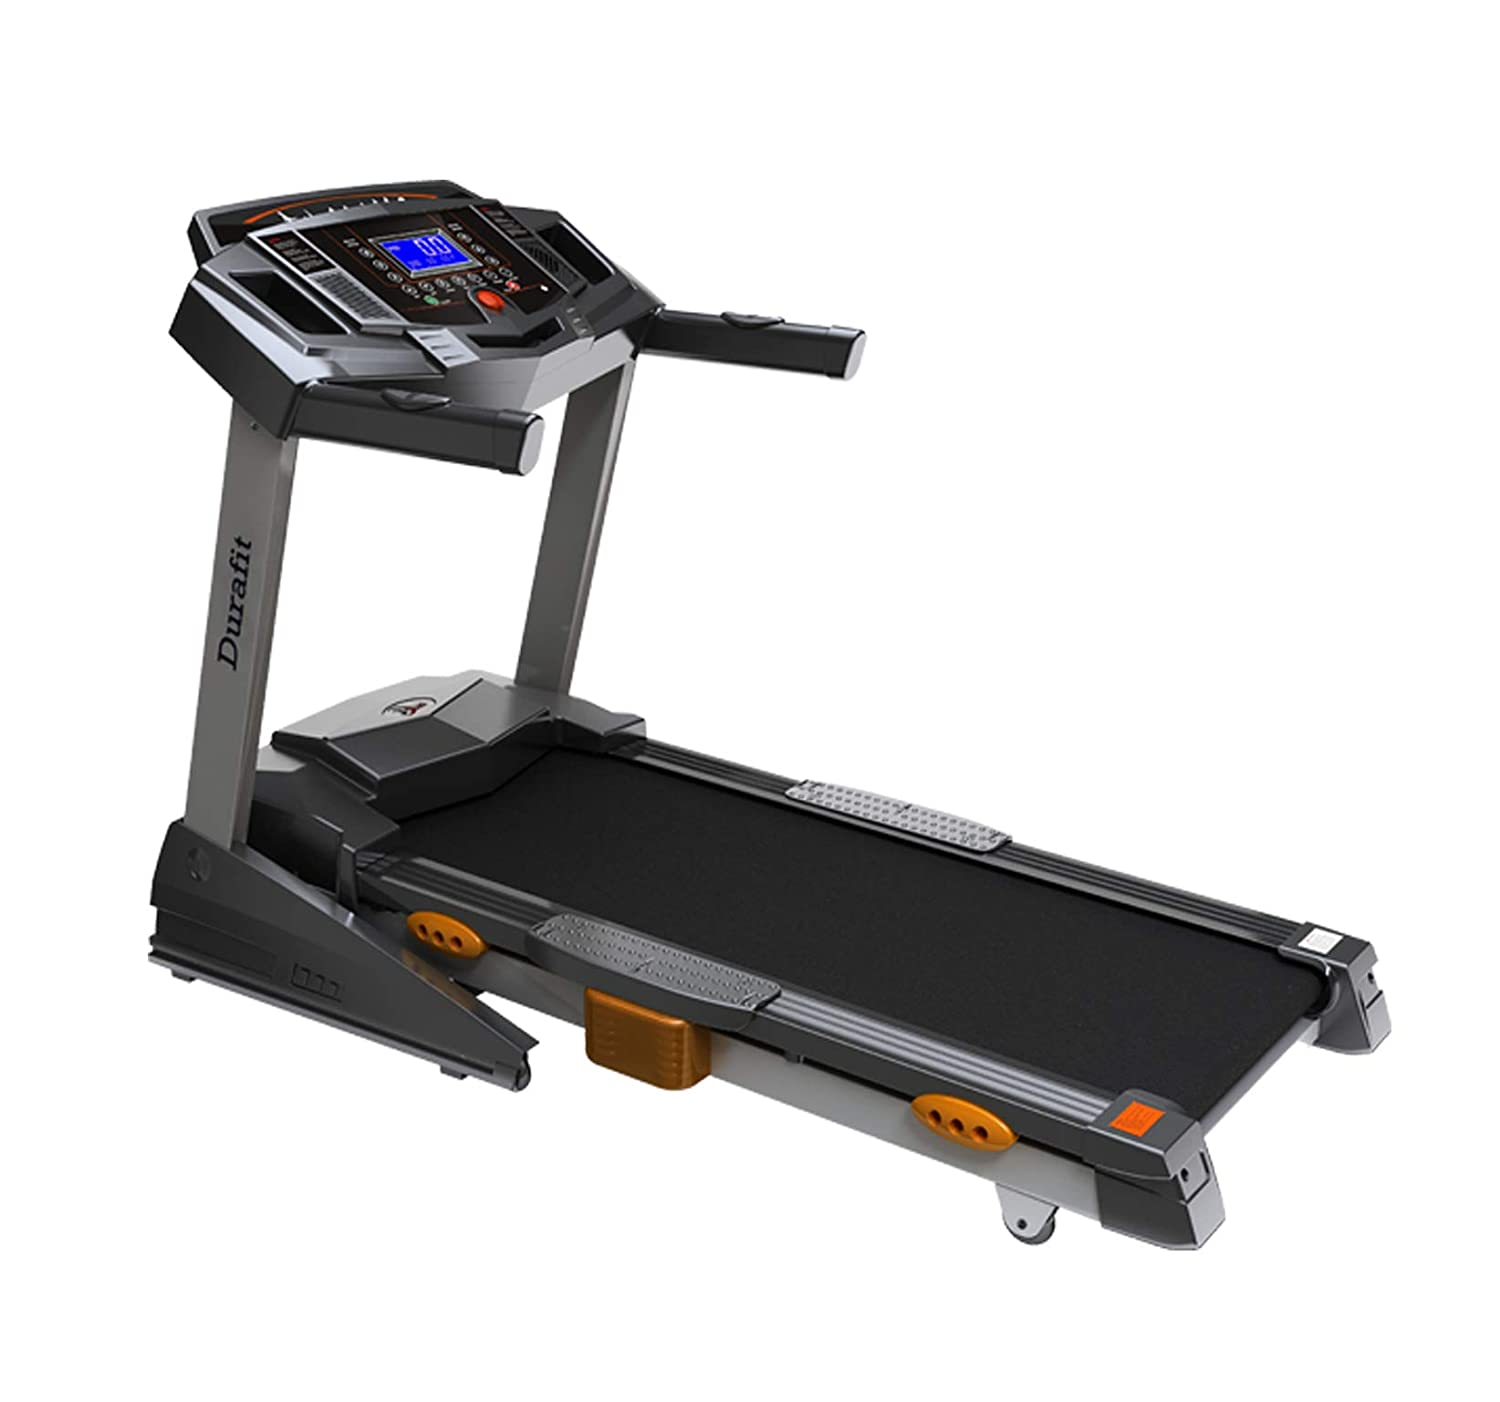 Top Ranke - Durafit Treadmill